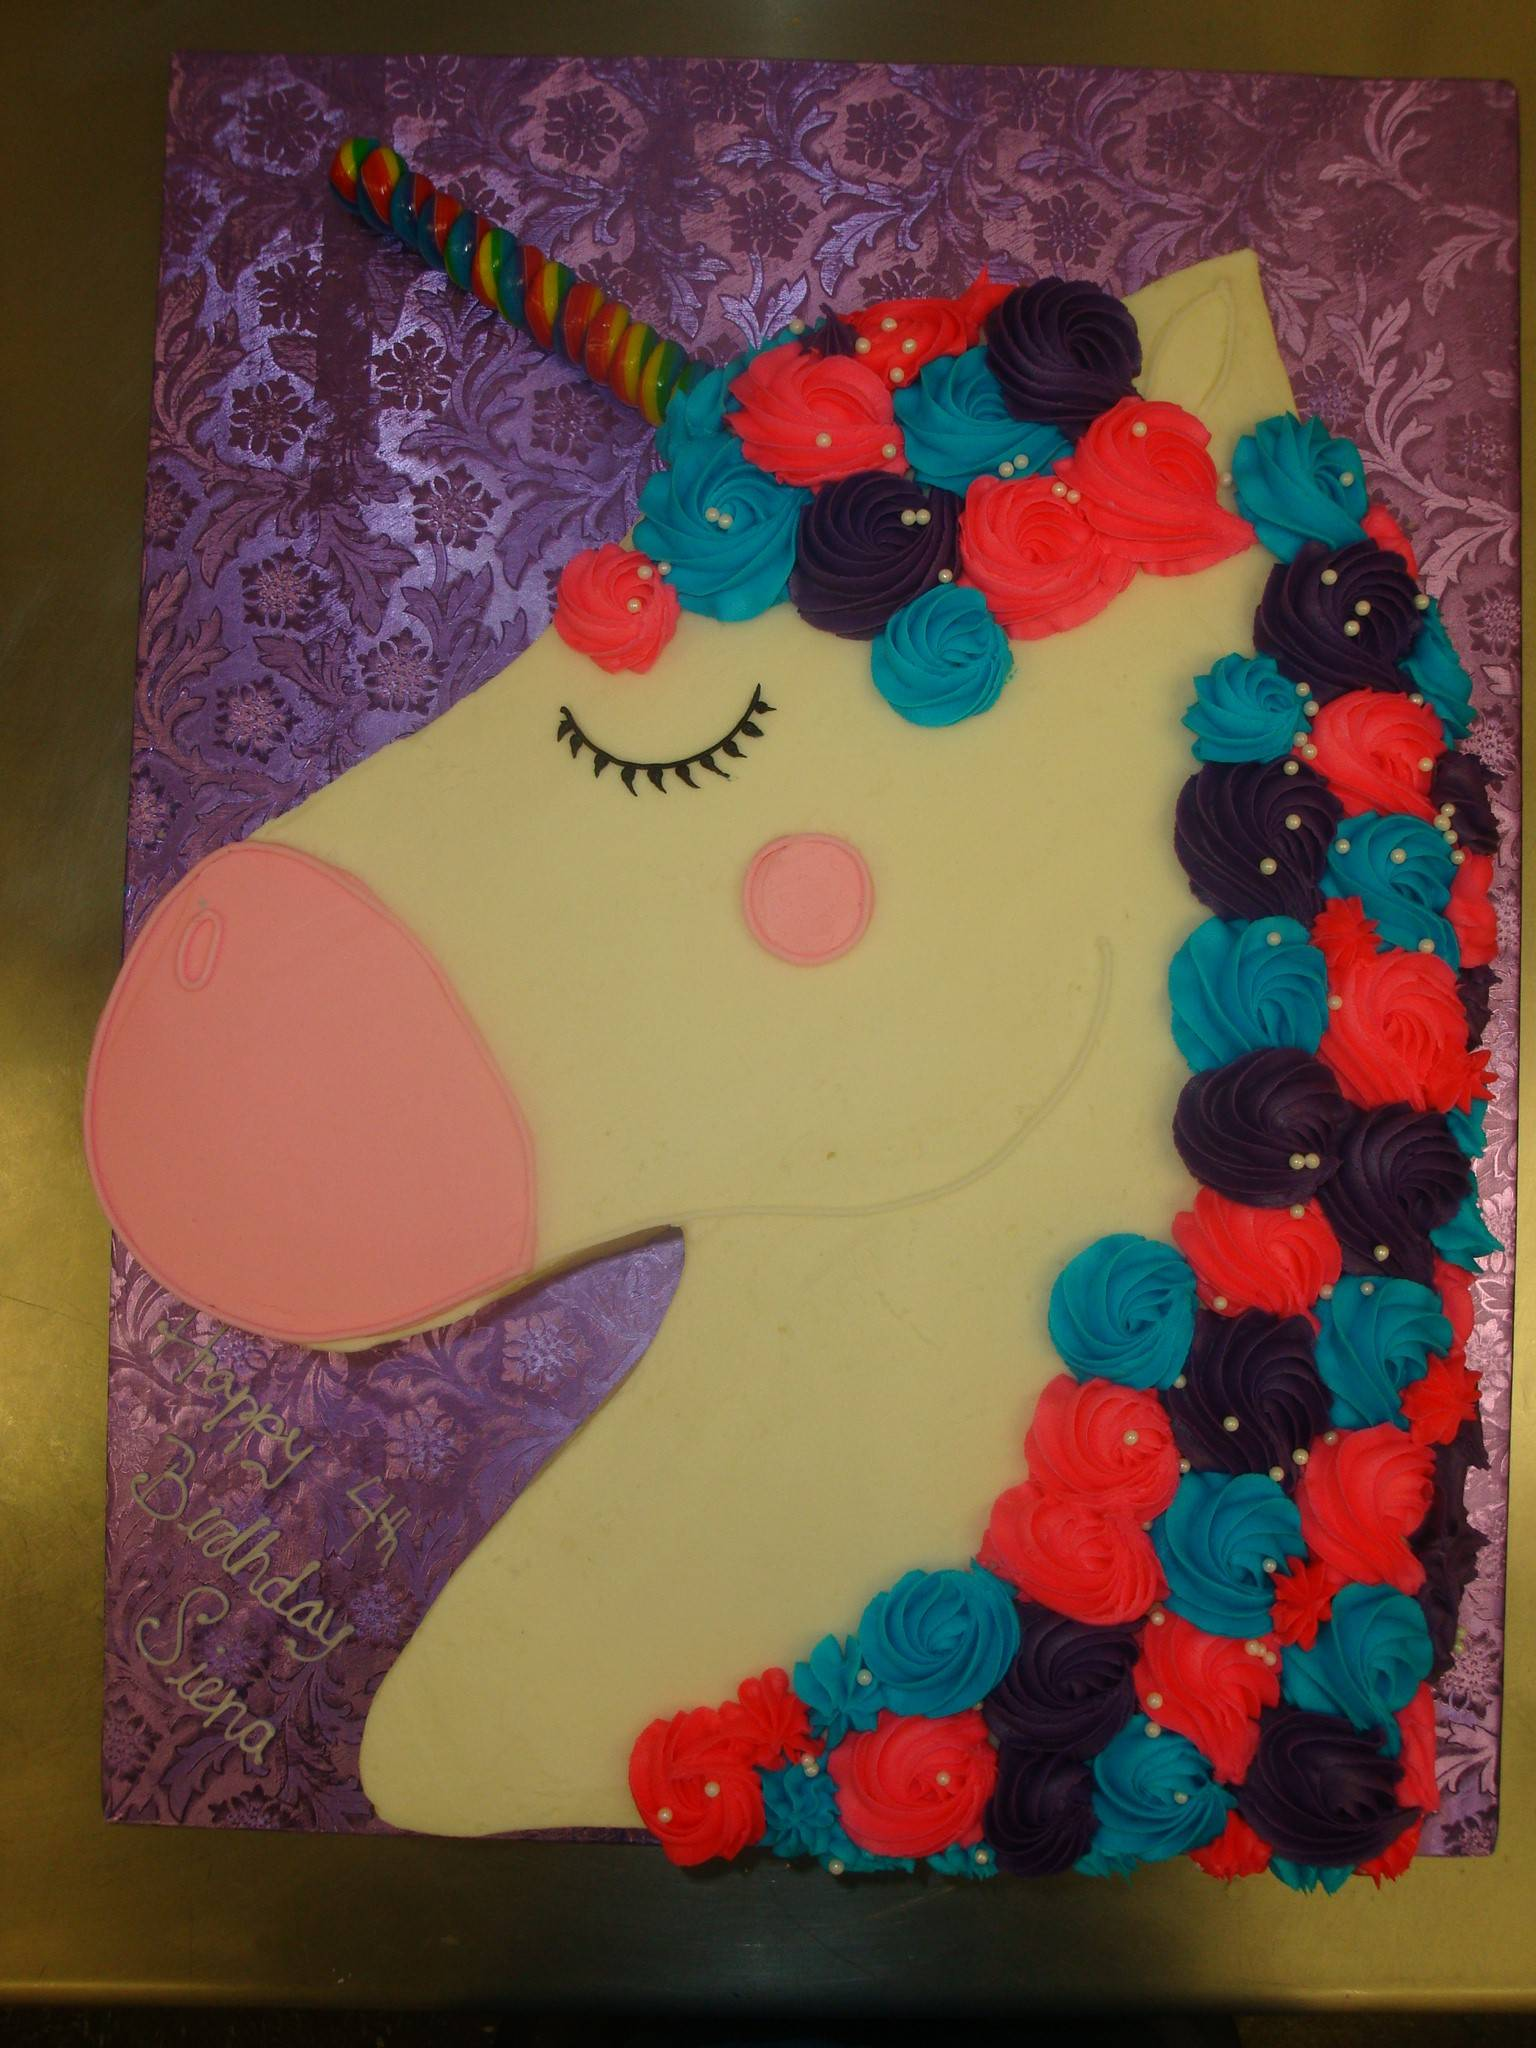 50 serving unicorn with candy horn $150